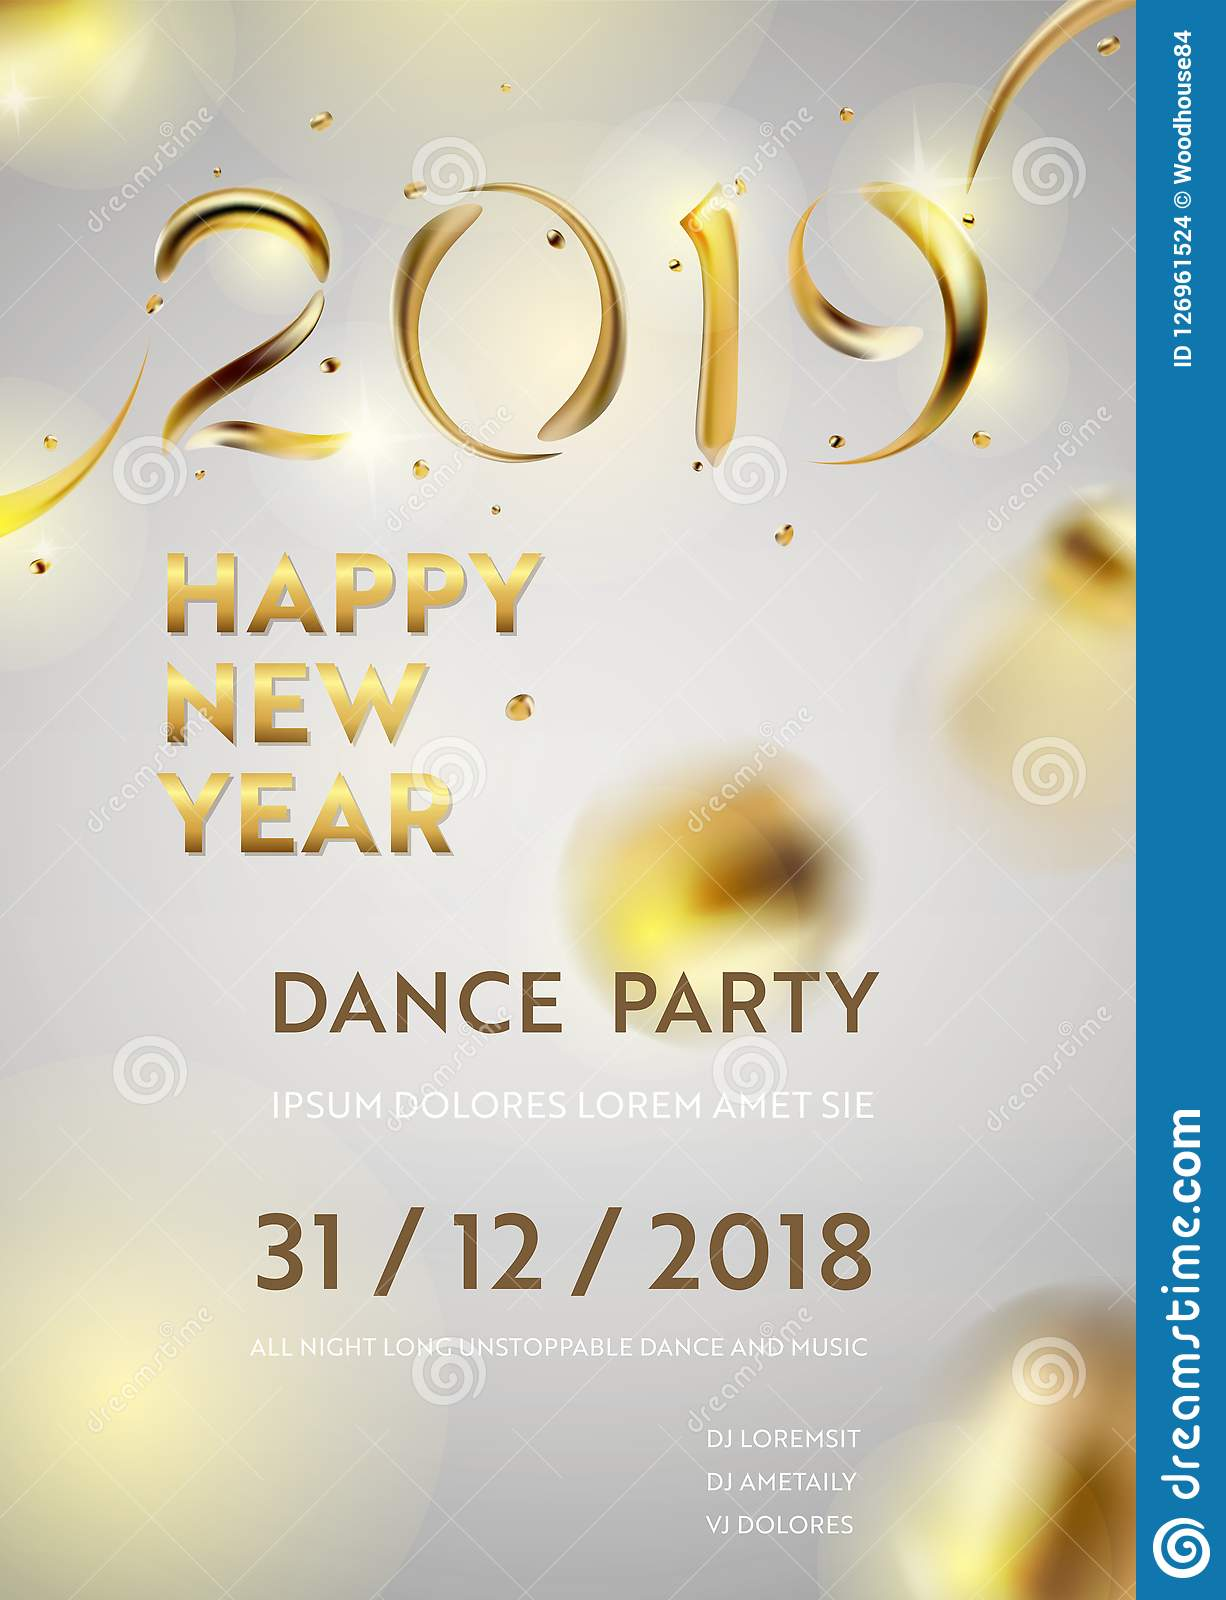 abstract golden 2019 new year background of modern liquid graphic elements dynamic banner with flowing